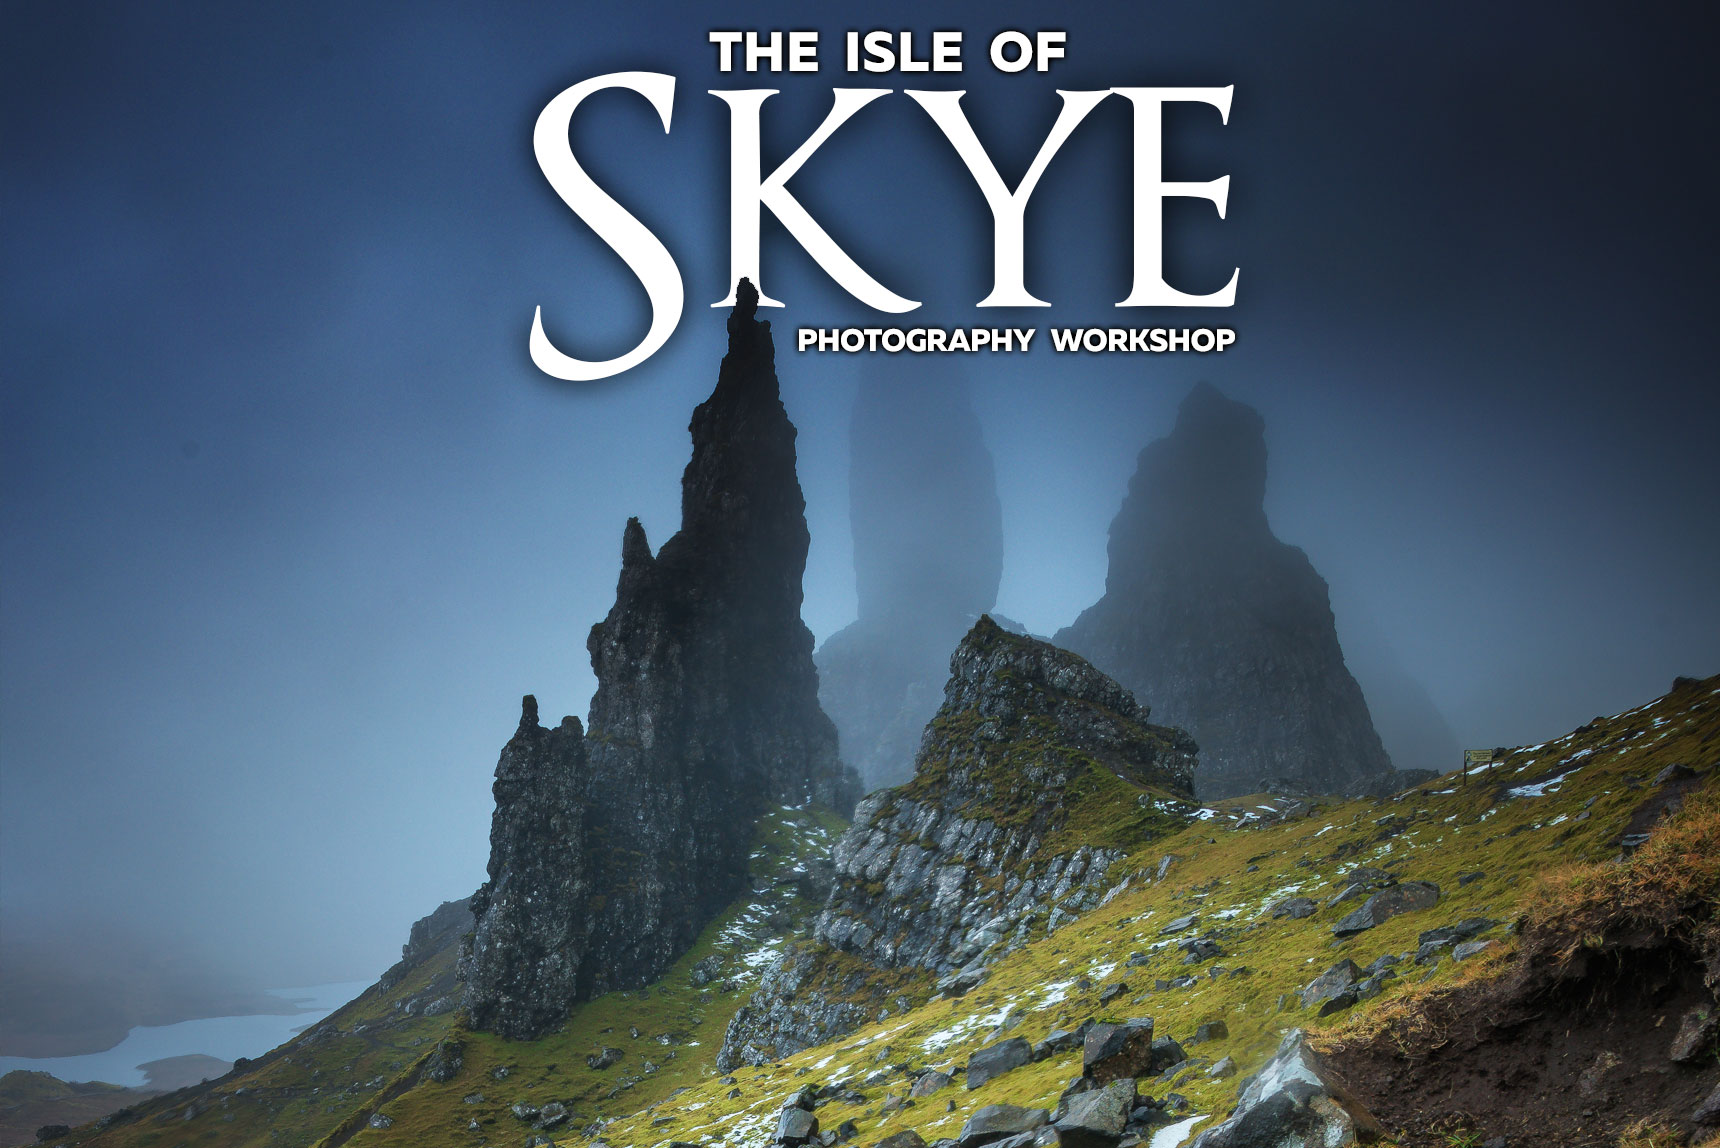 The Isle fo Skye Photography Workshop